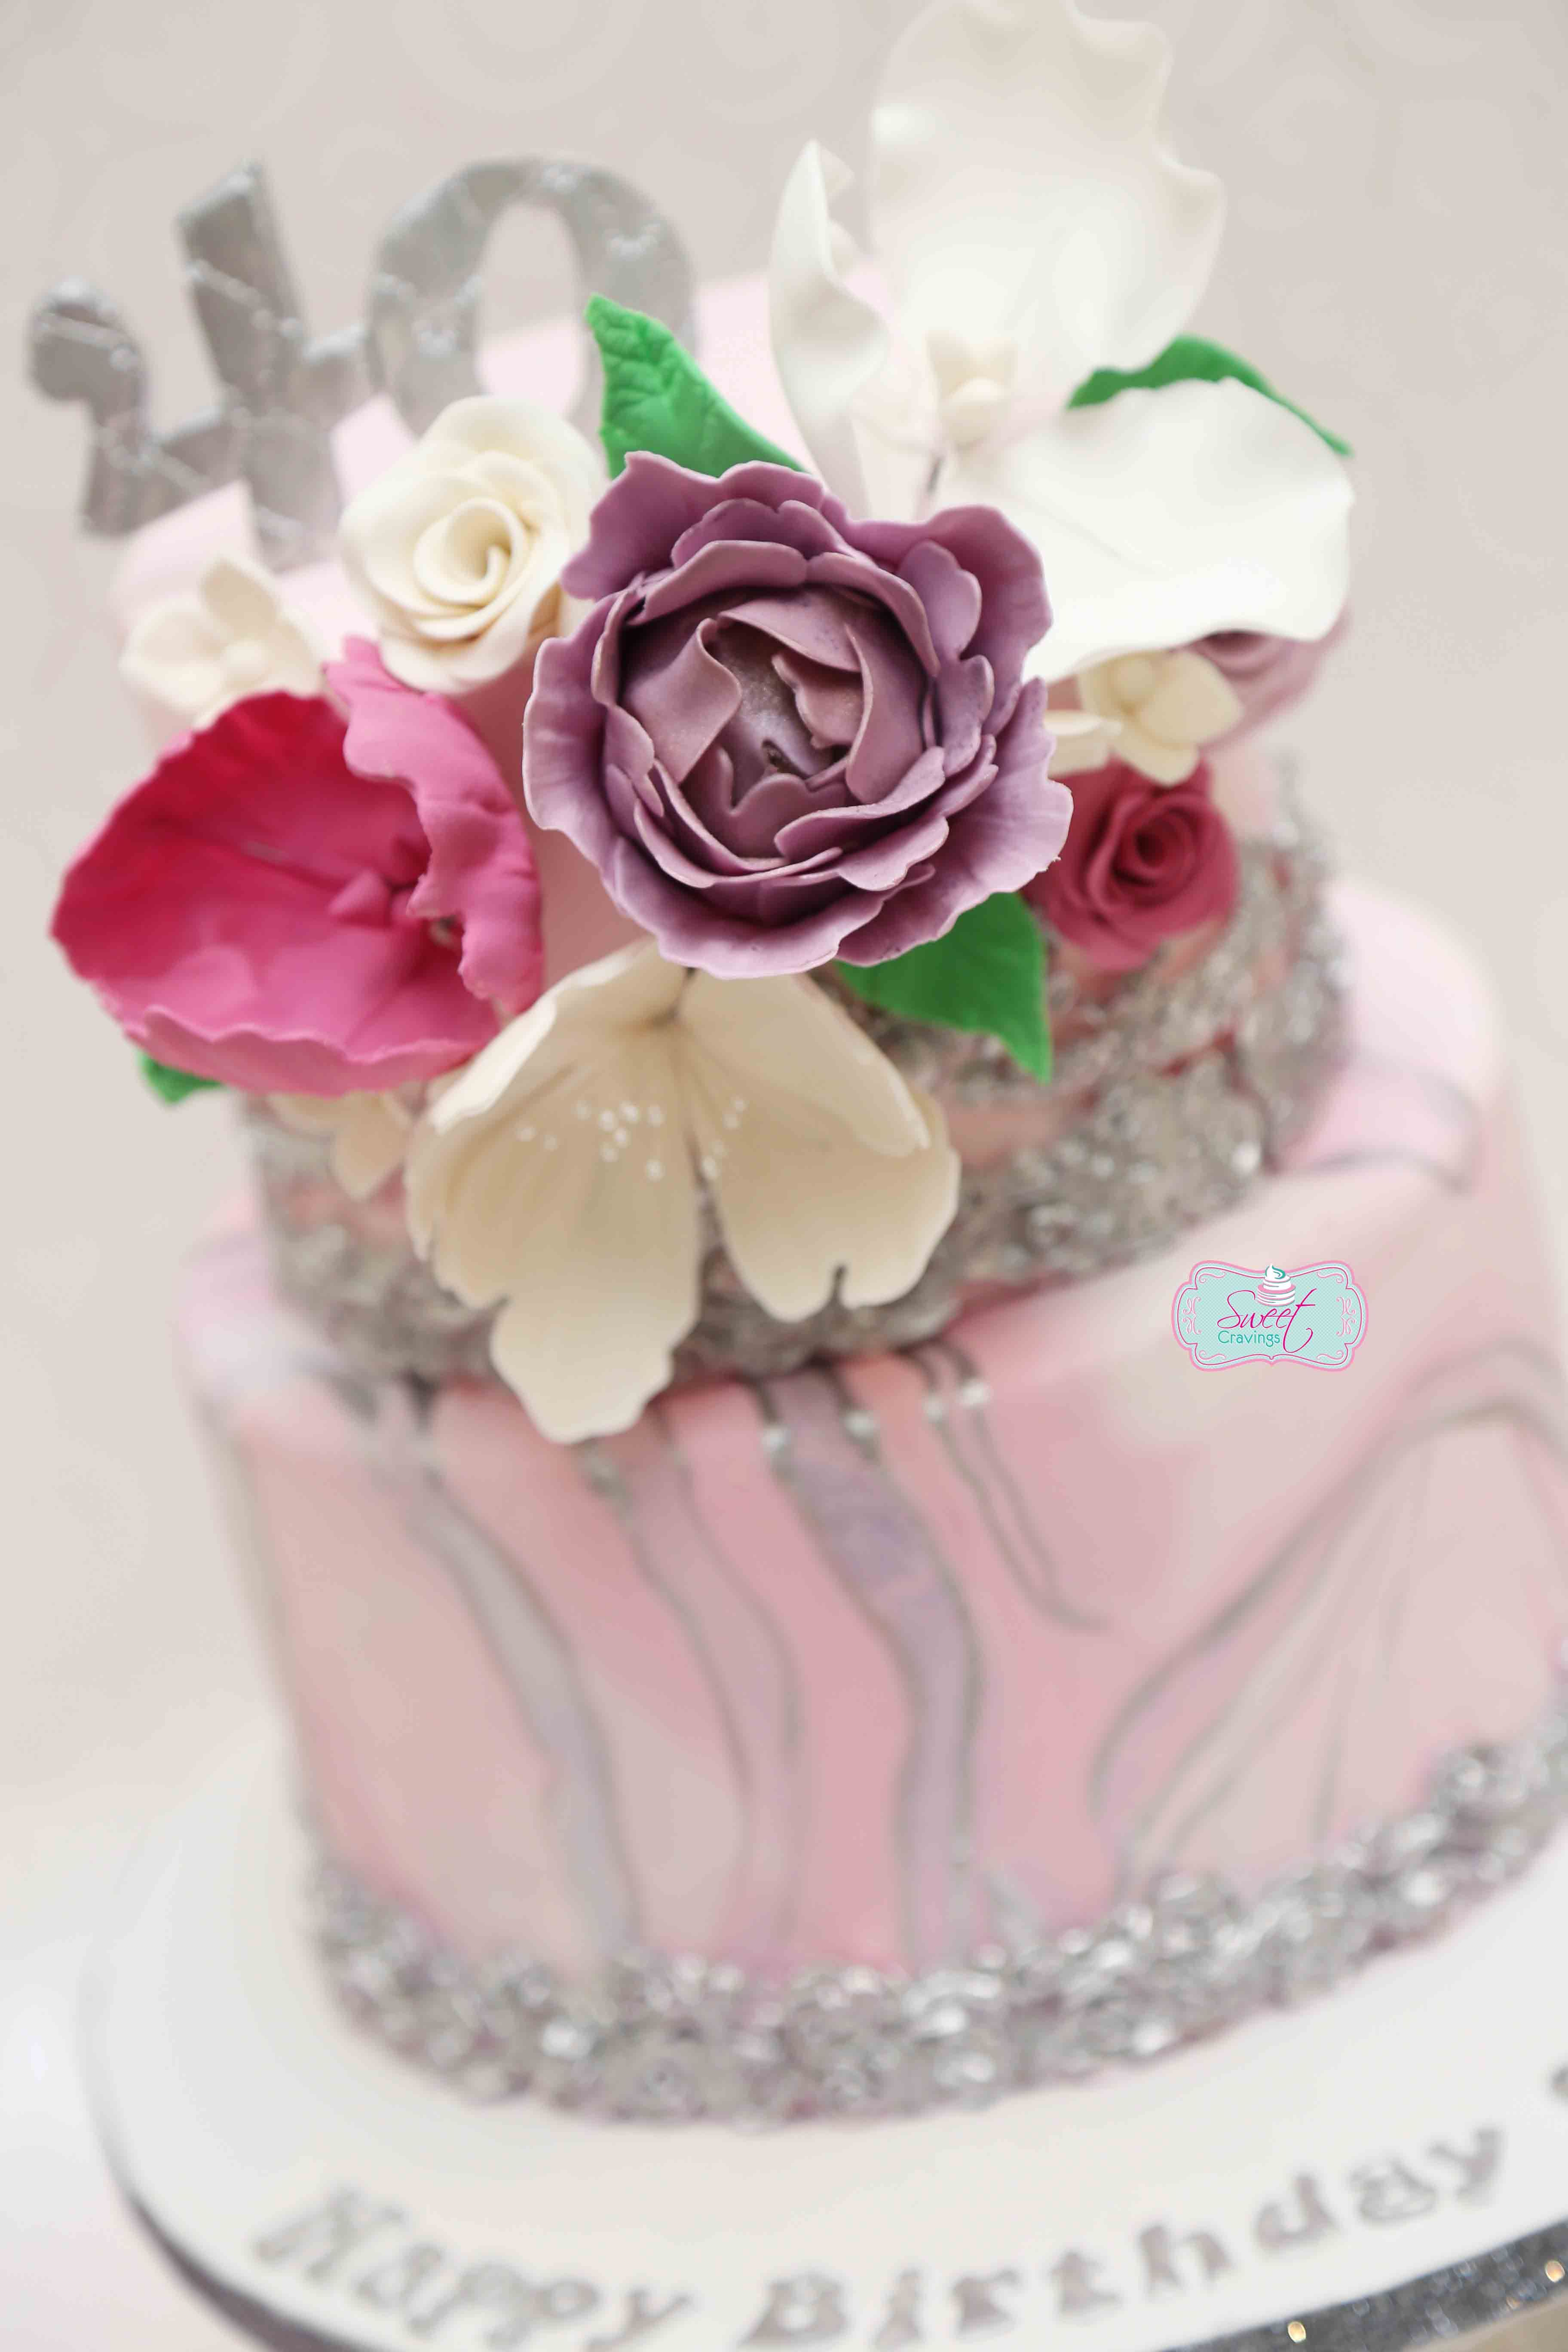 Stupendous 40Th Birthday Pink And Silver Marbled Cake Cake How To Make Cake Funny Birthday Cards Online Amentibdeldamsfinfo